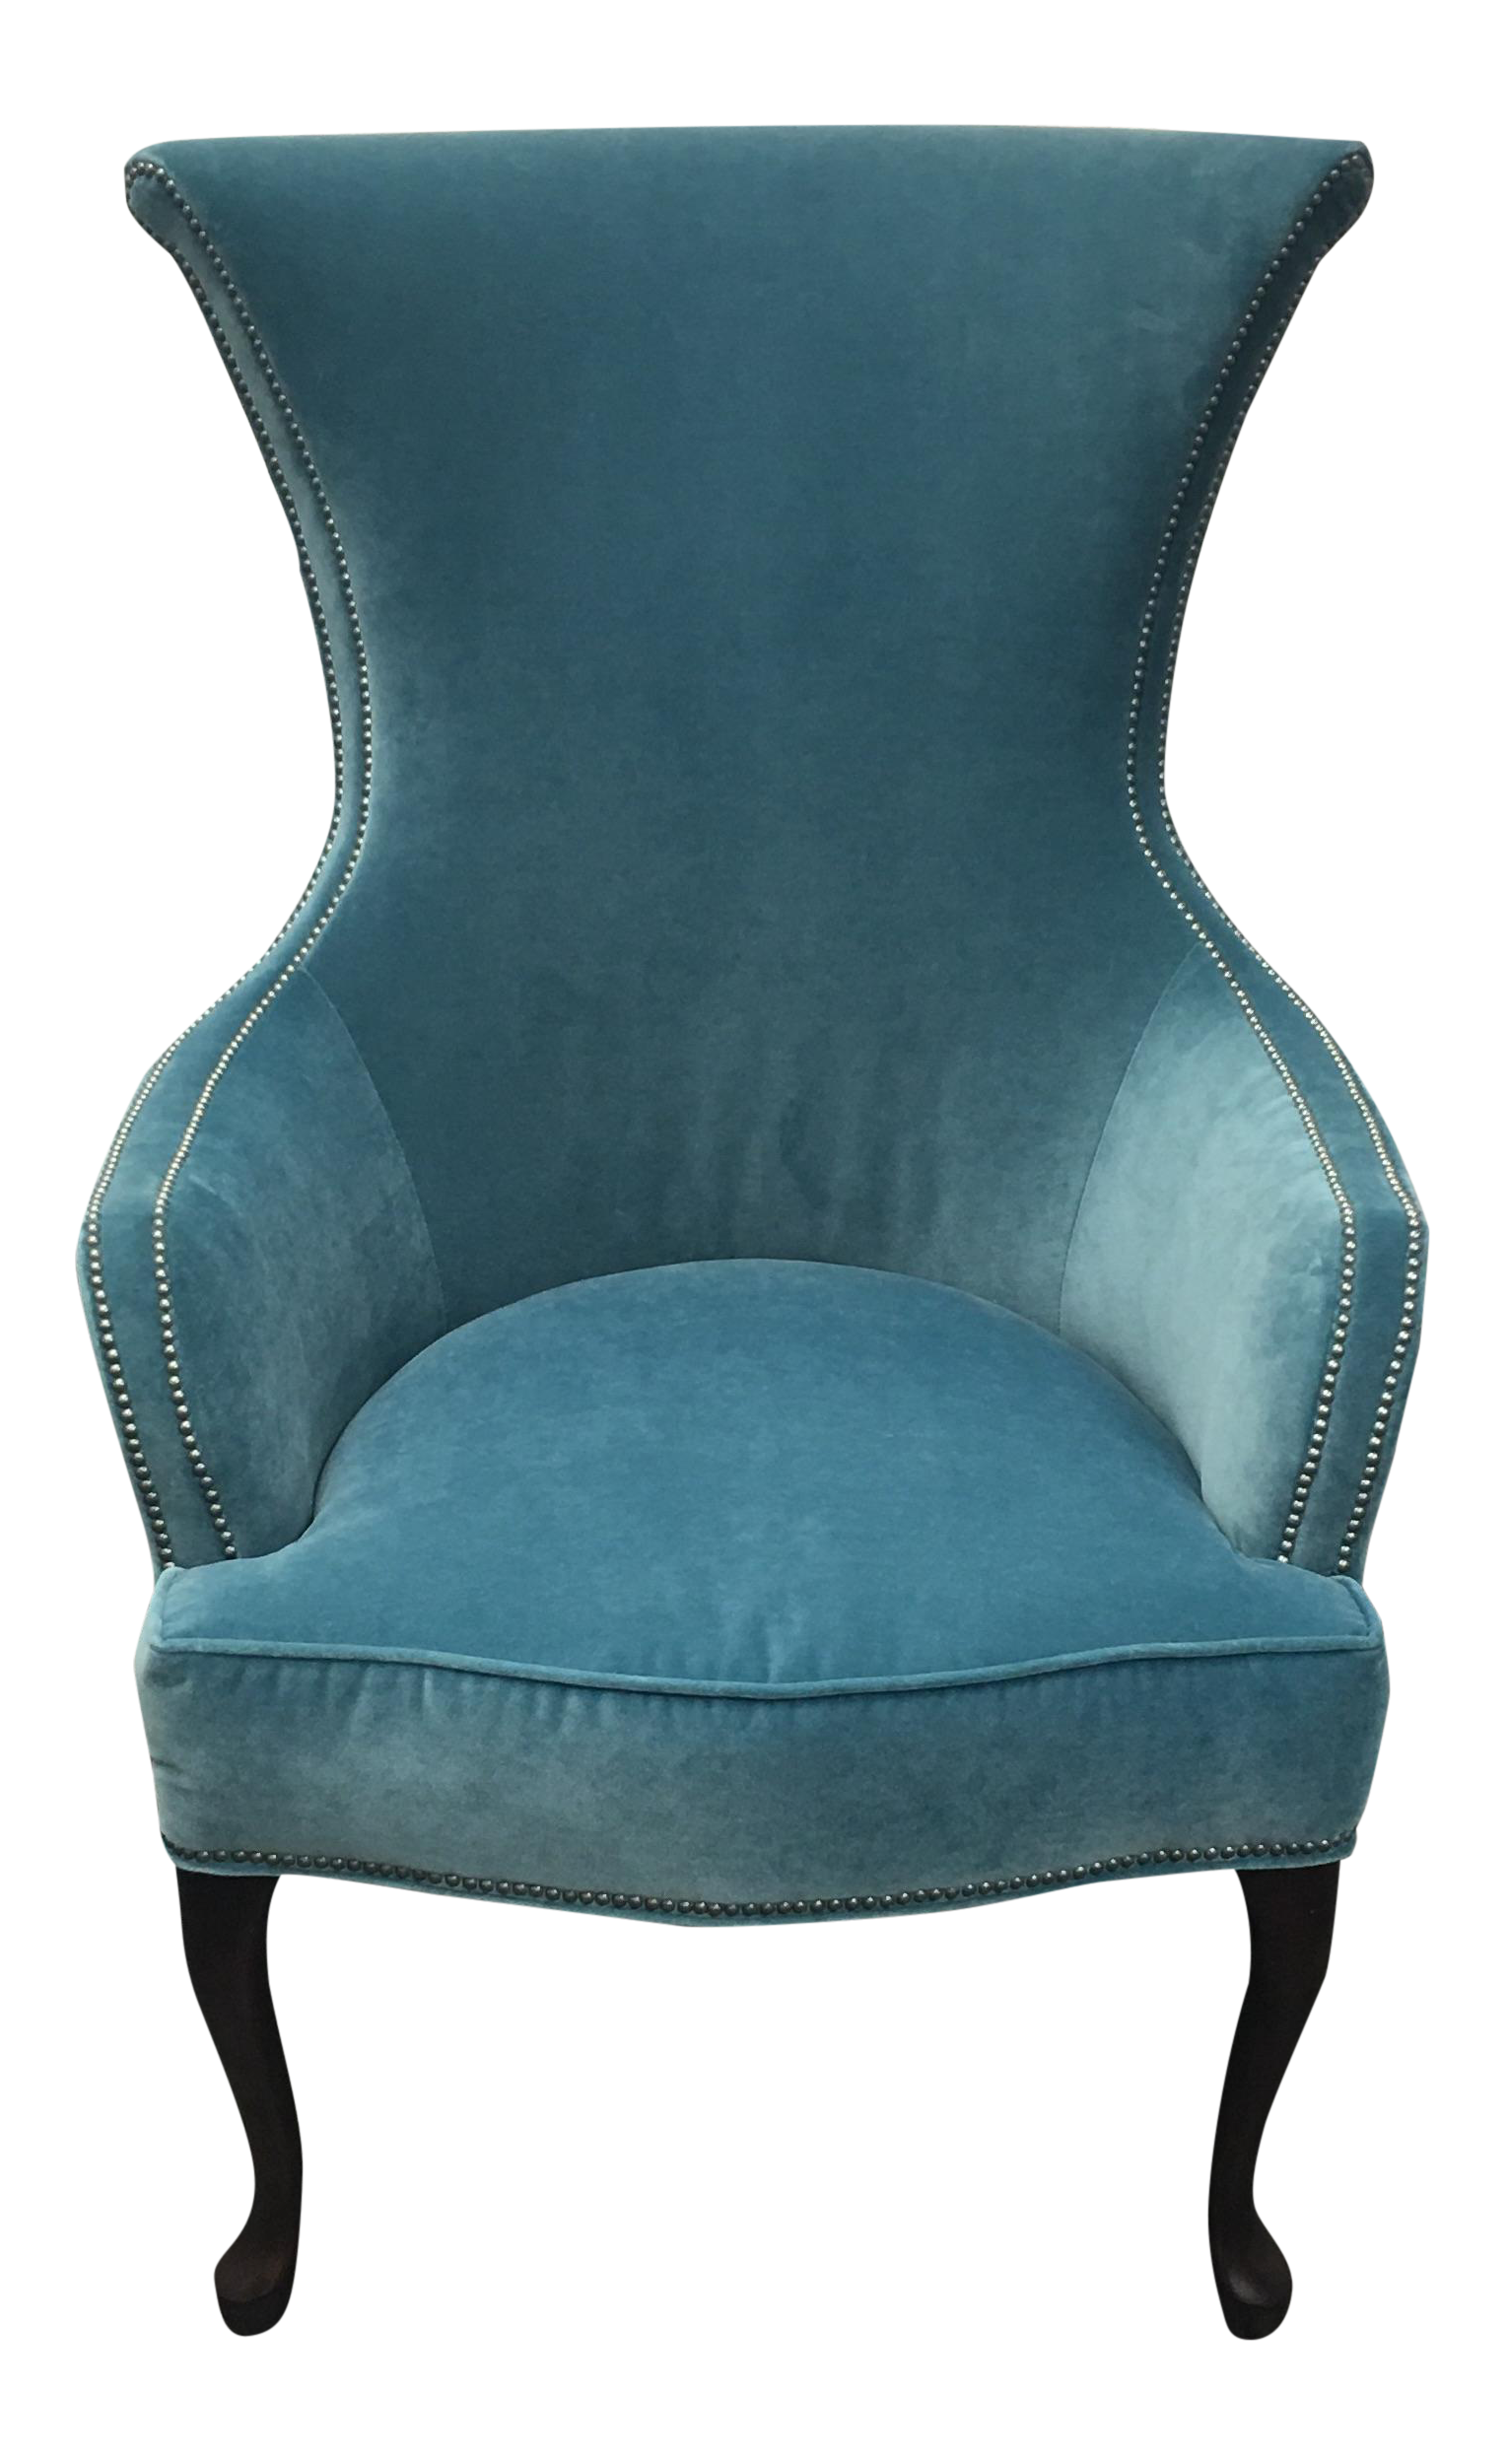 Antique queen anne wingback chair - Henredon Teal Velvet Hourglass Chair